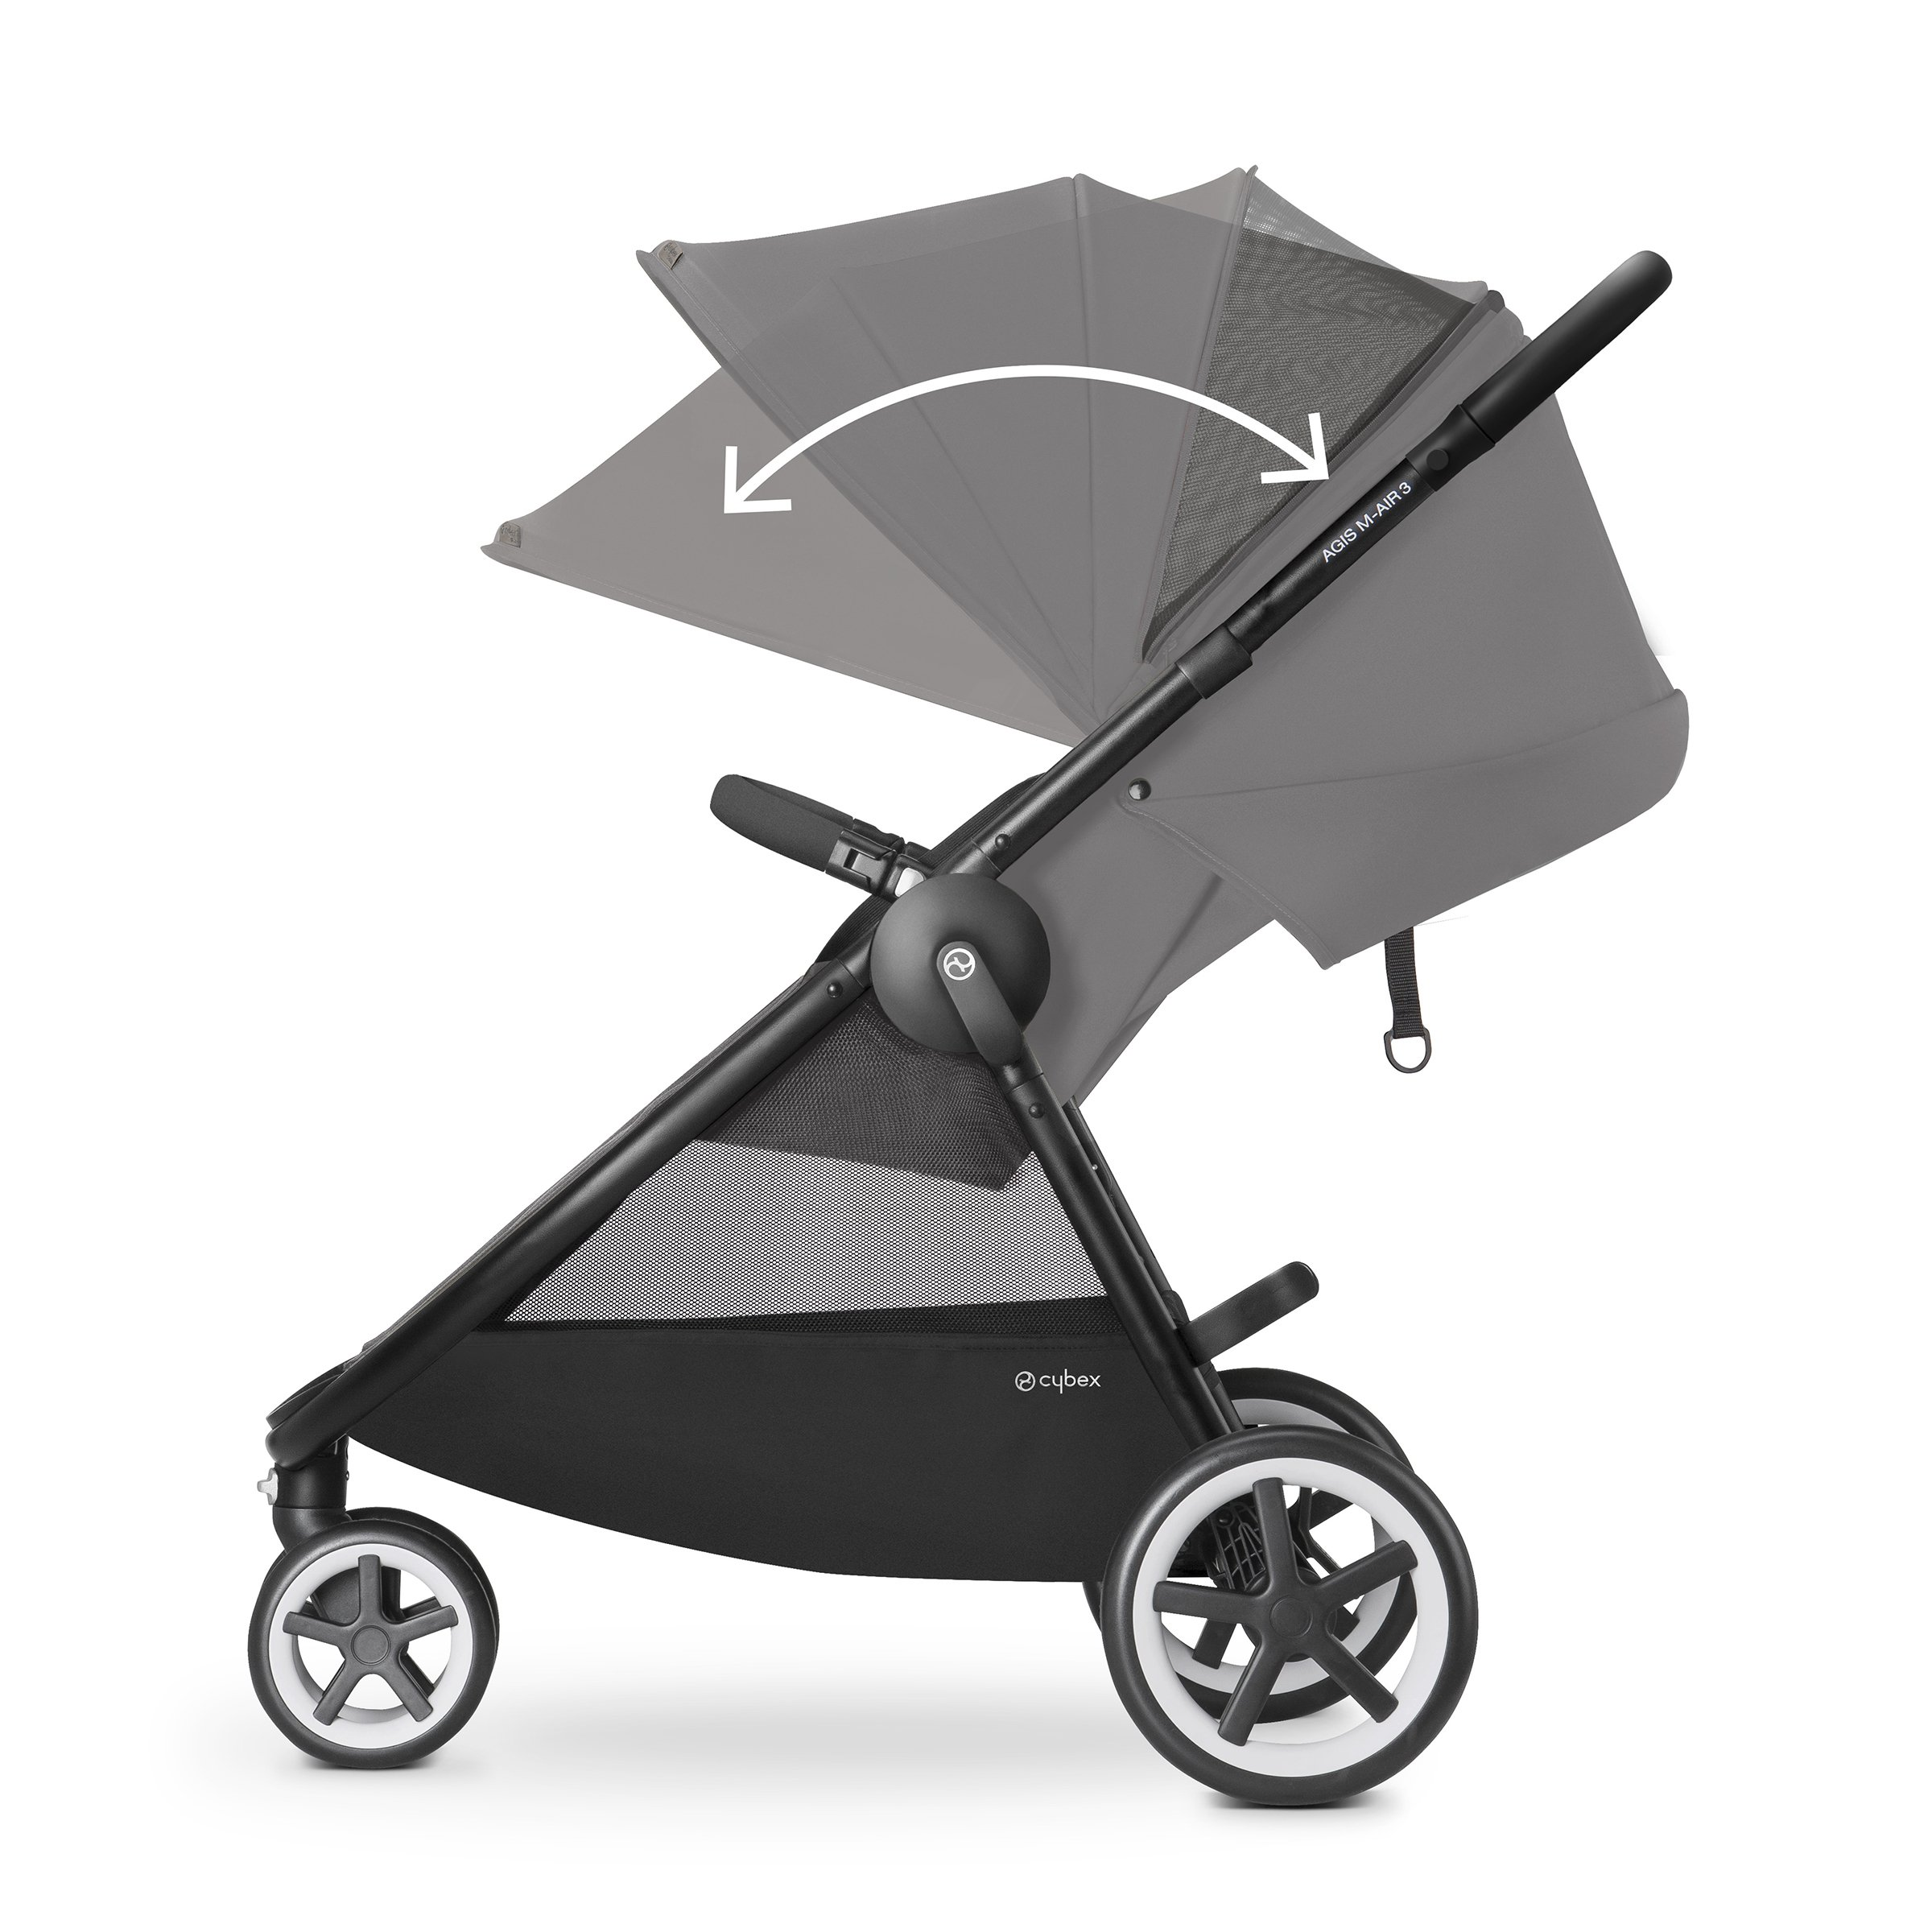 Cybex Agis M-Air 3/Aton/Aton Base Travel System, Moon Dust by Cybex (Image #5)